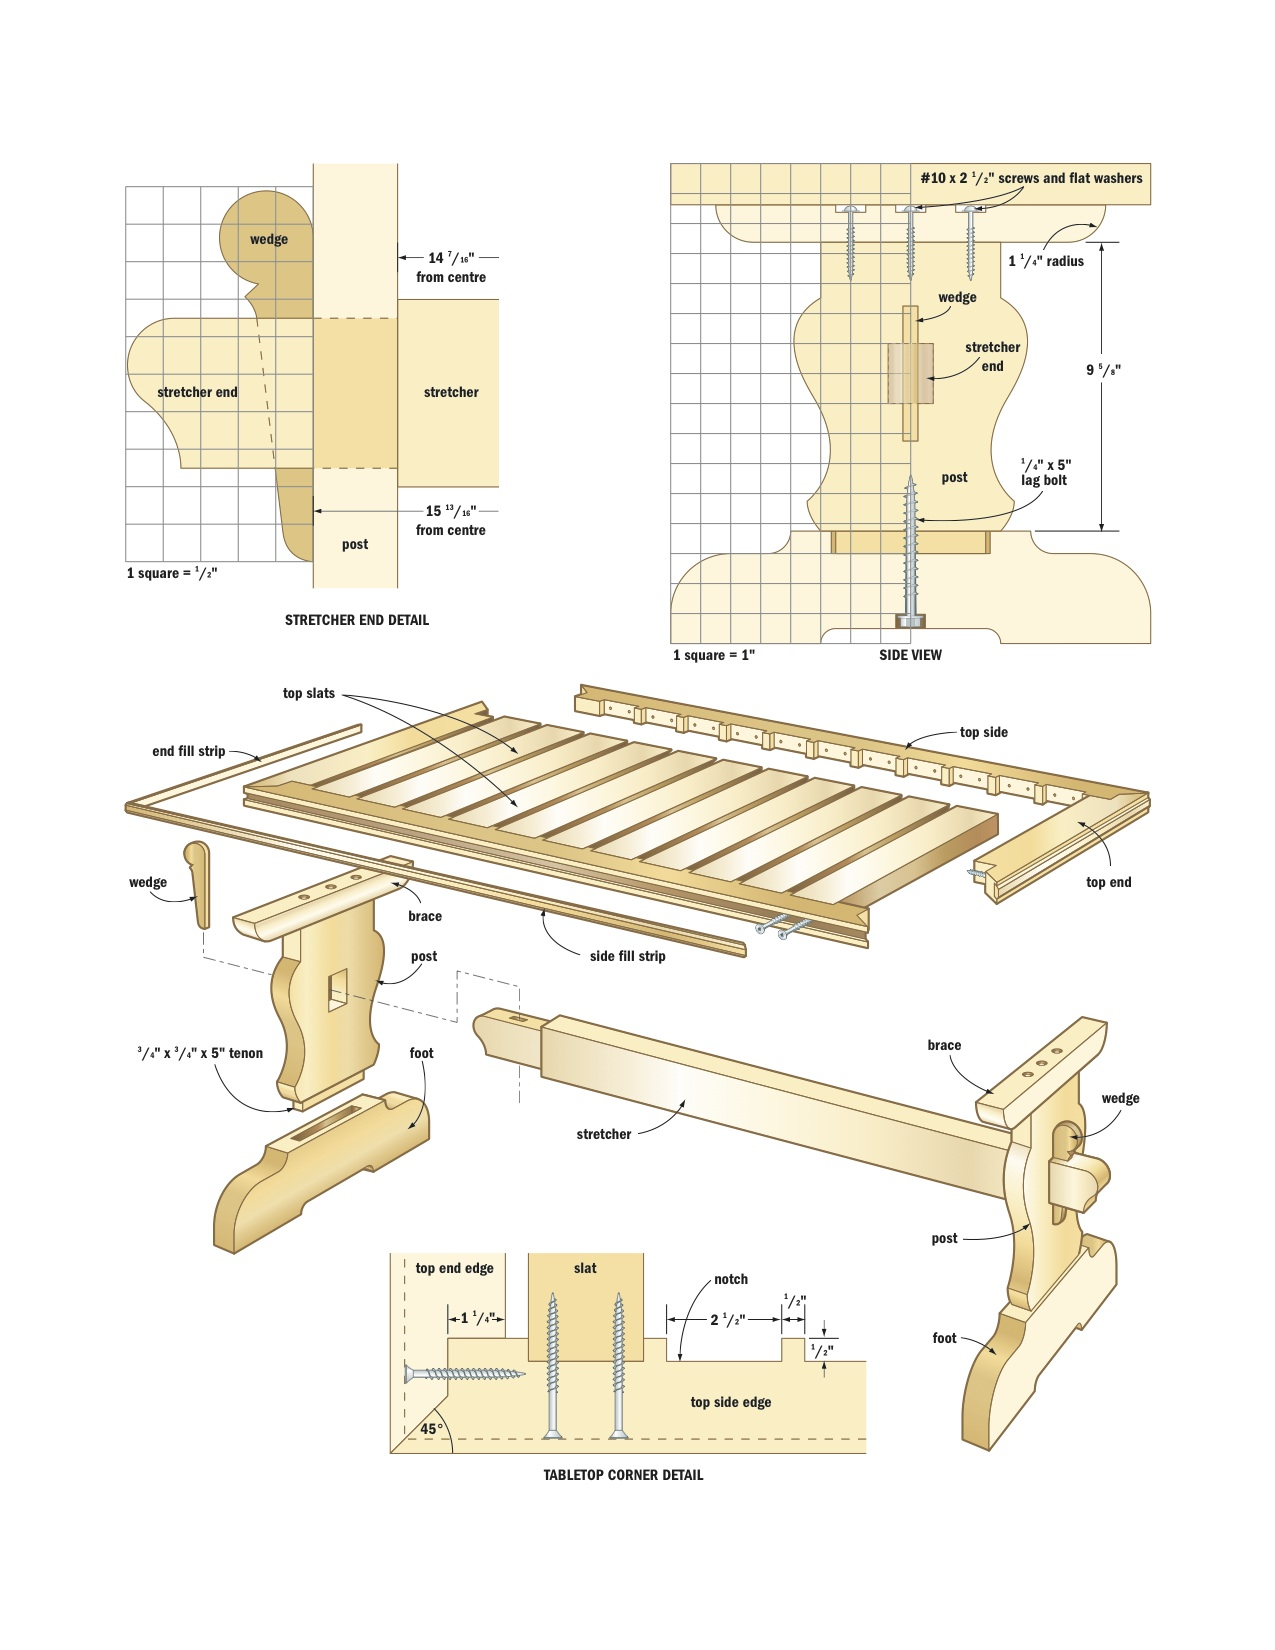 mission style trestle dining table plans furnitureplans : spruce coffee table woodworking plans 2 from antiqueroses.org size 1275 x 1650 jpeg 288kB